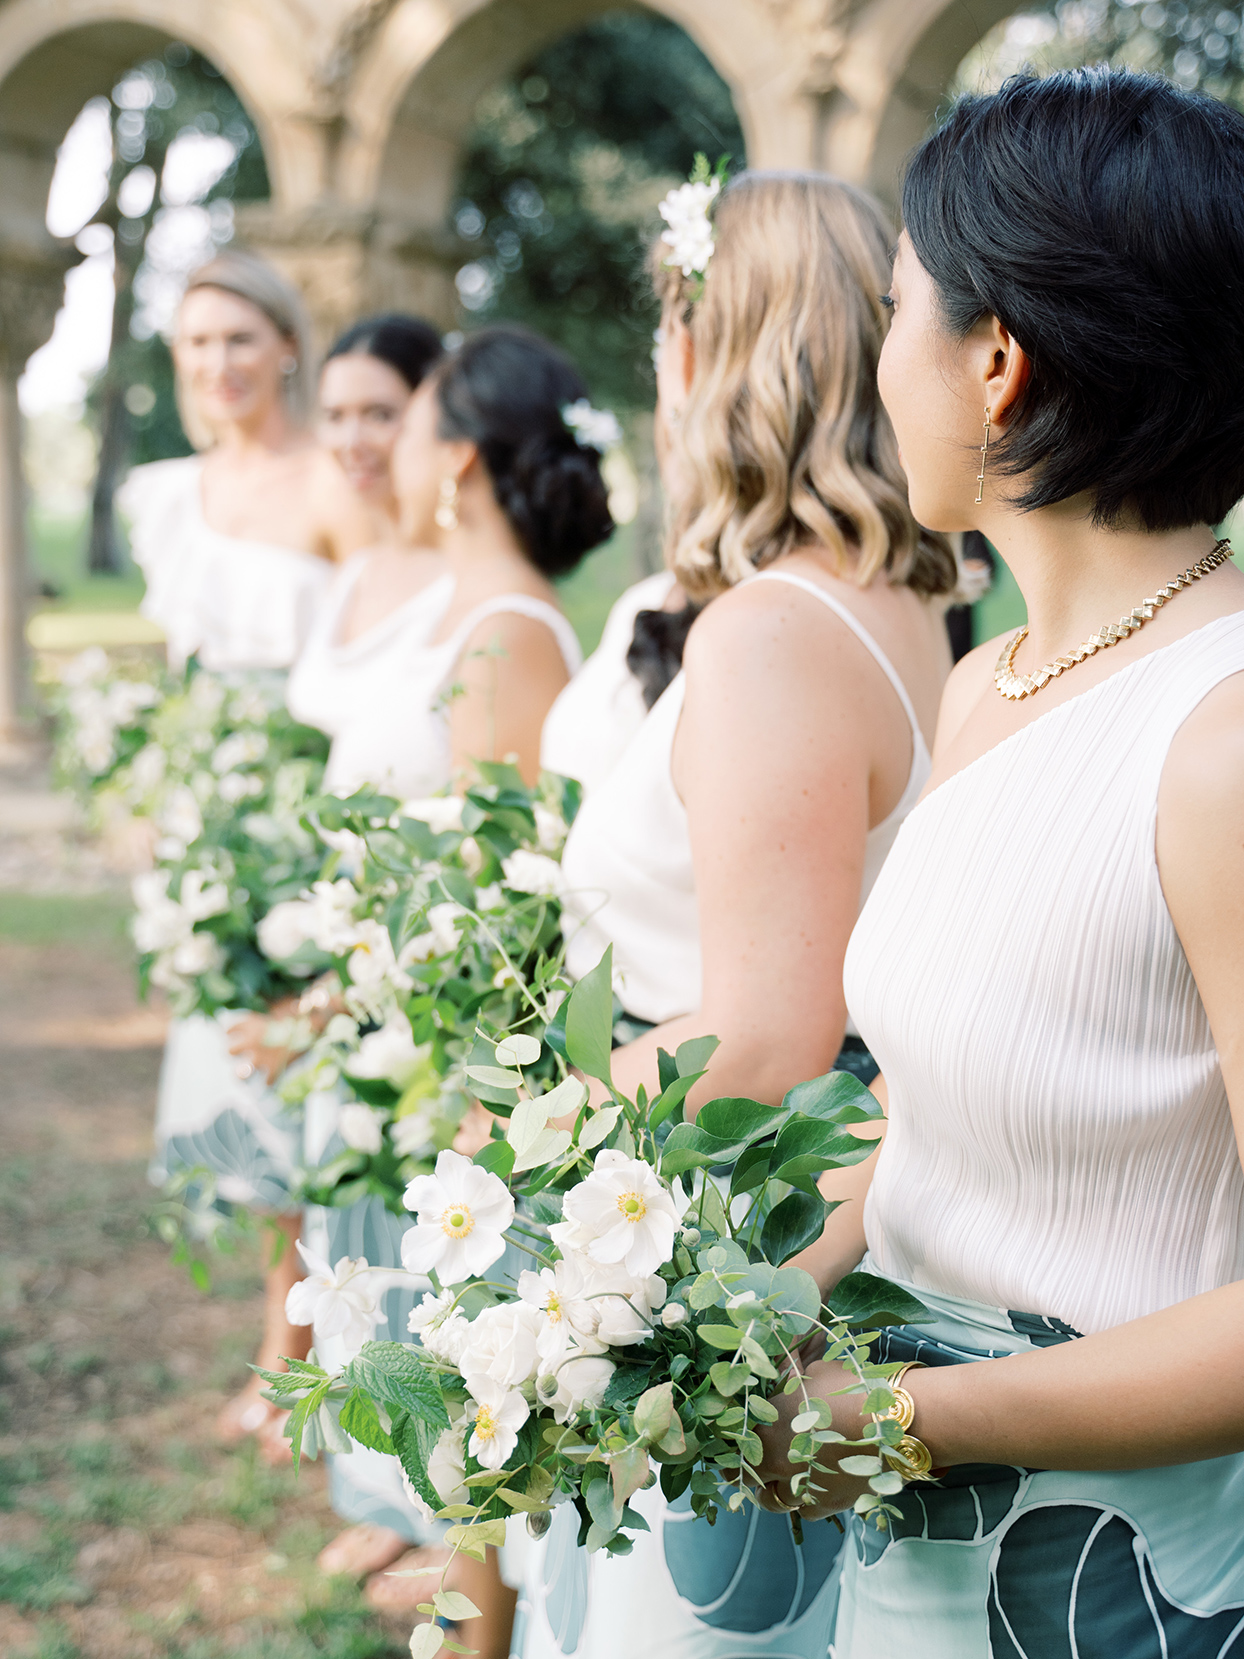 alyssa macia wedding bridesmaids in white and teal holding flowers